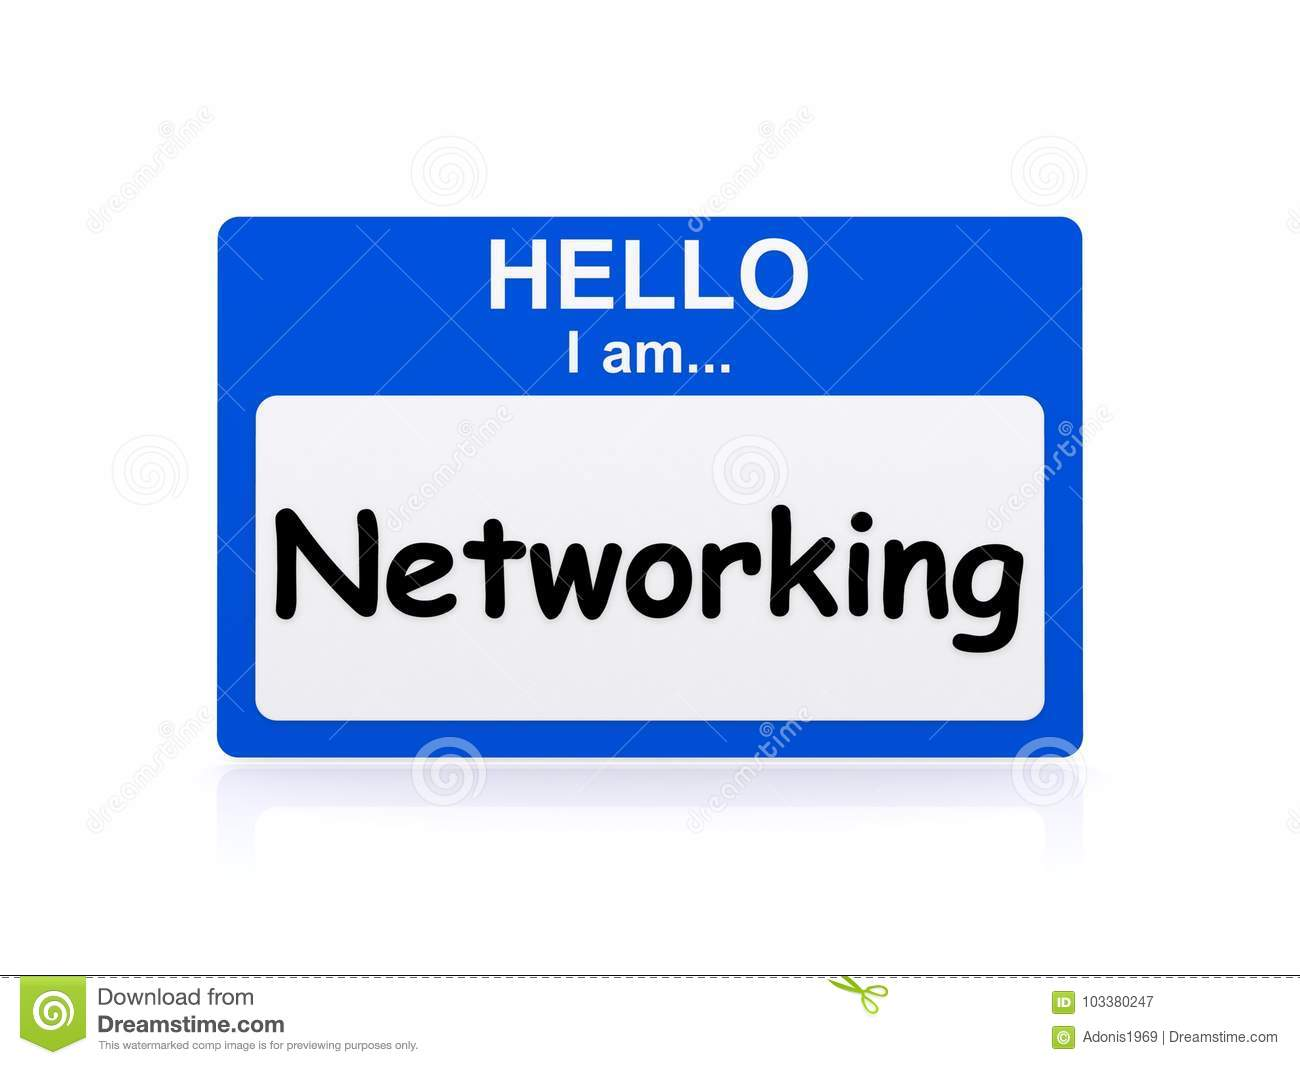 Hello I am Networking